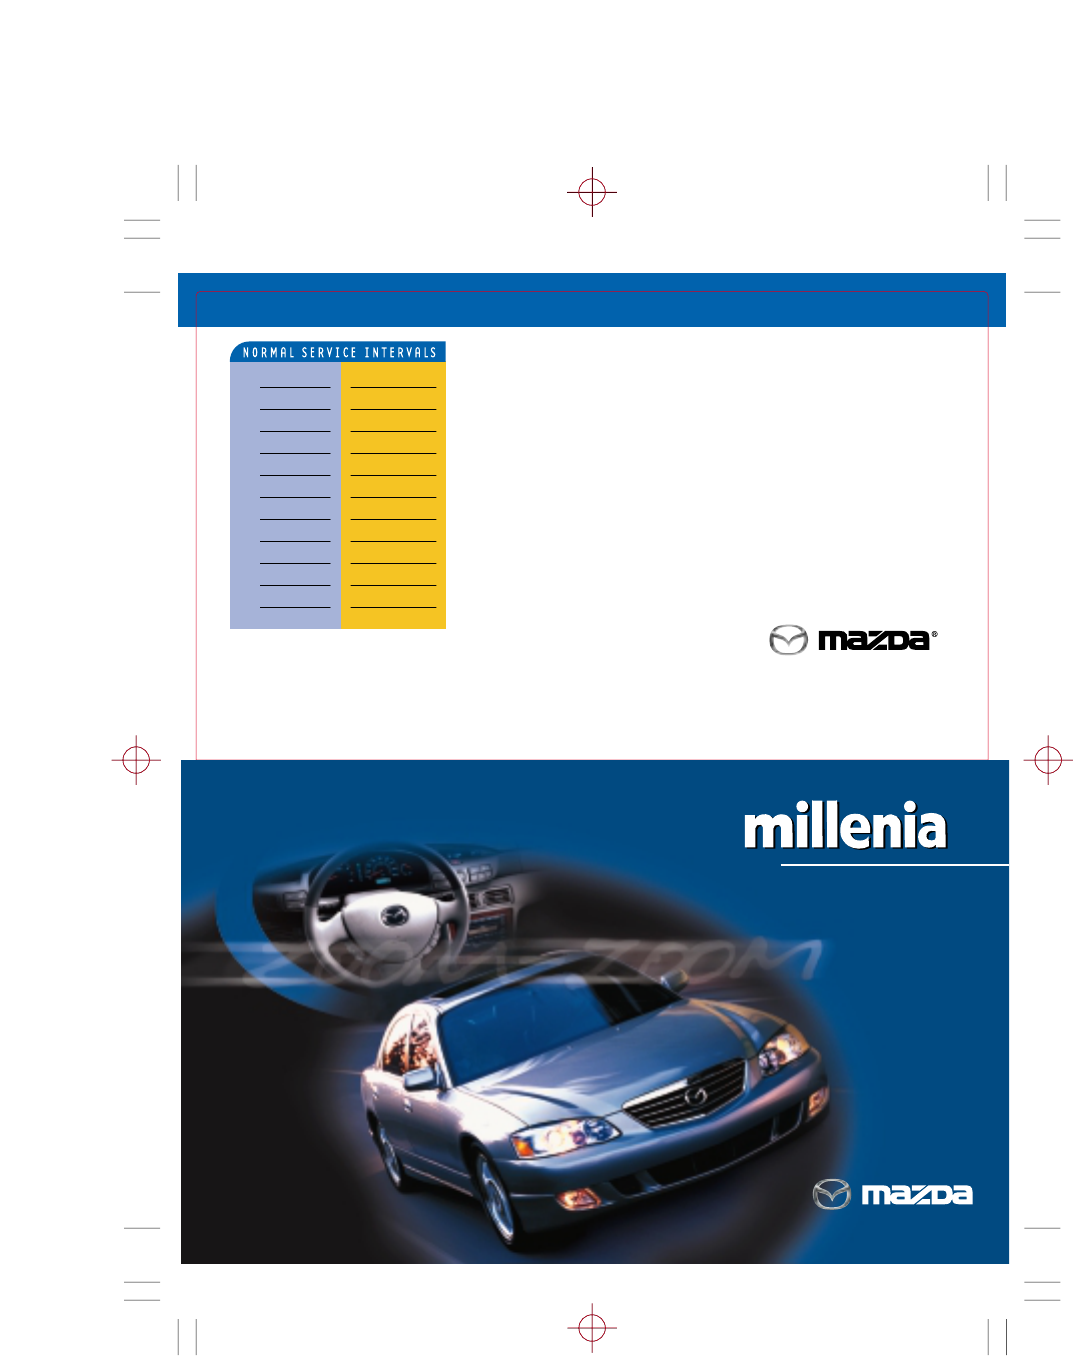 mazda millenia 2002 misc documents quick tips pdf rh manuals co 2002 Mazda Millenia Parts 2002 Mazda Millenia Interior